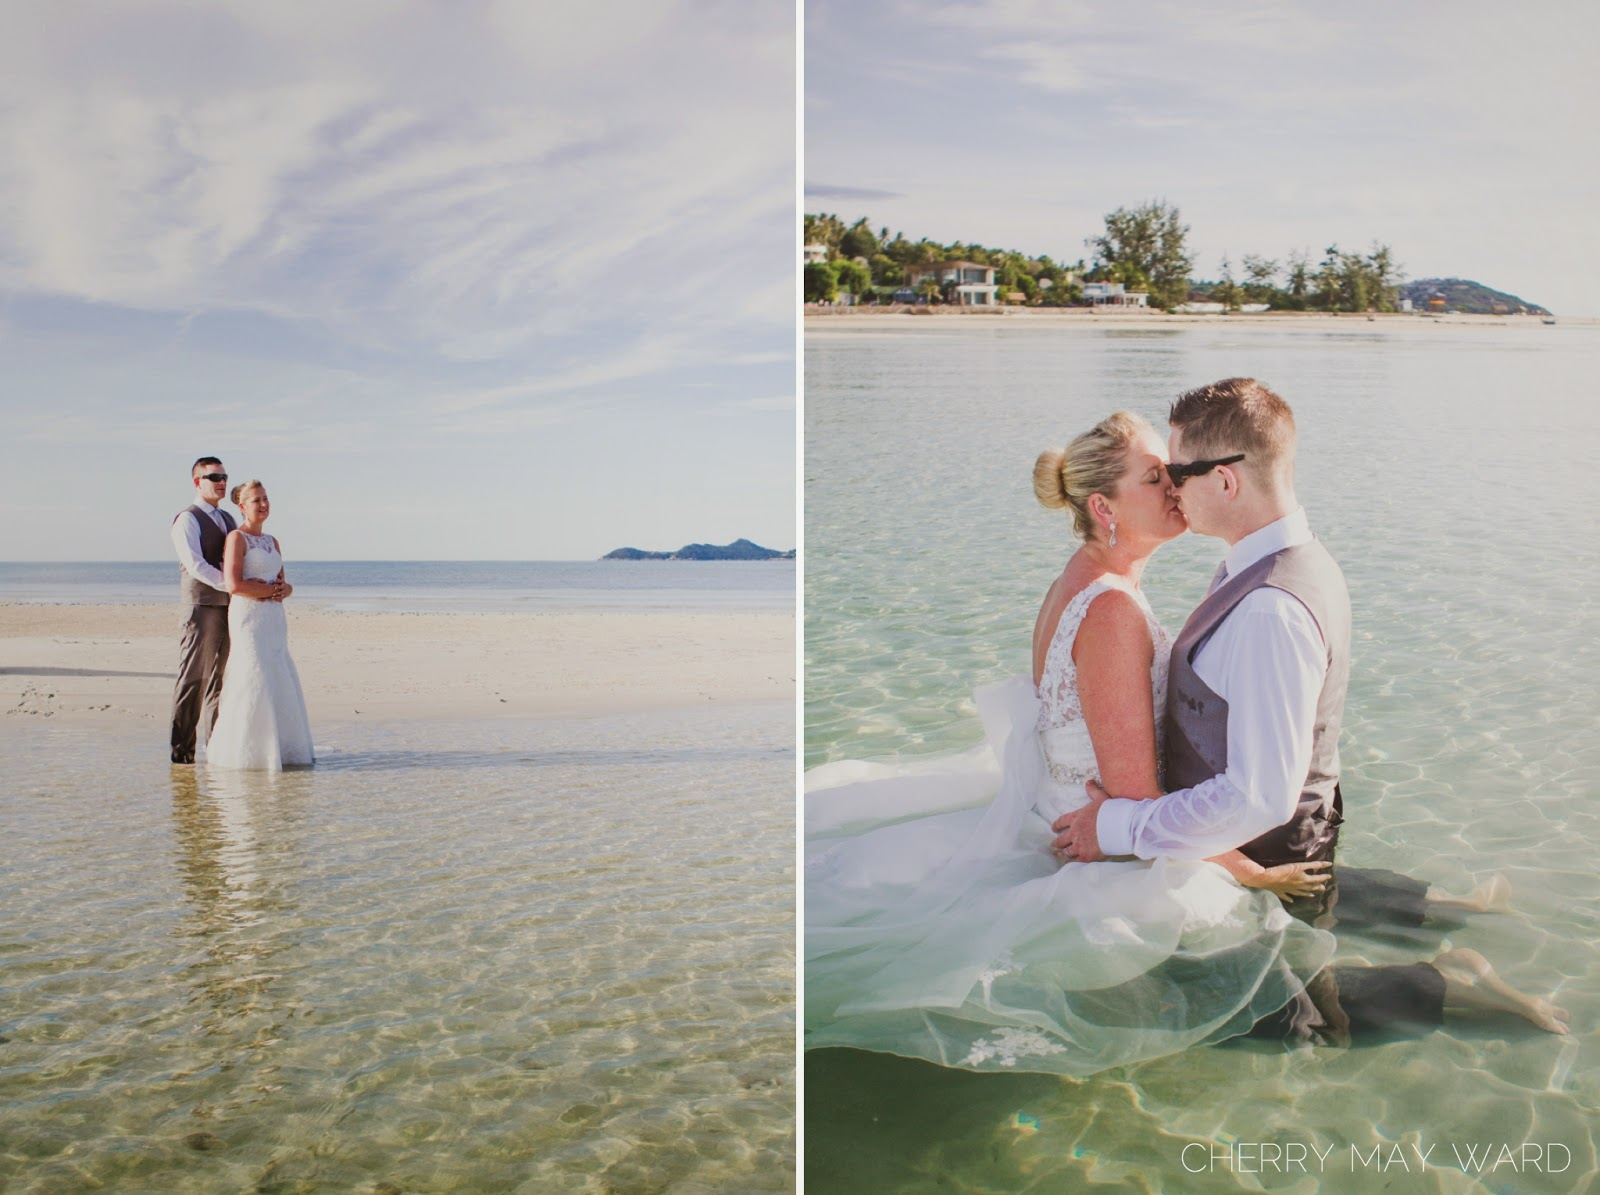 bride and groom kissing in the water, Koh Samui wedding dress in the water, Trash the dress on Samui, couple in love in wedding dress in the sea,